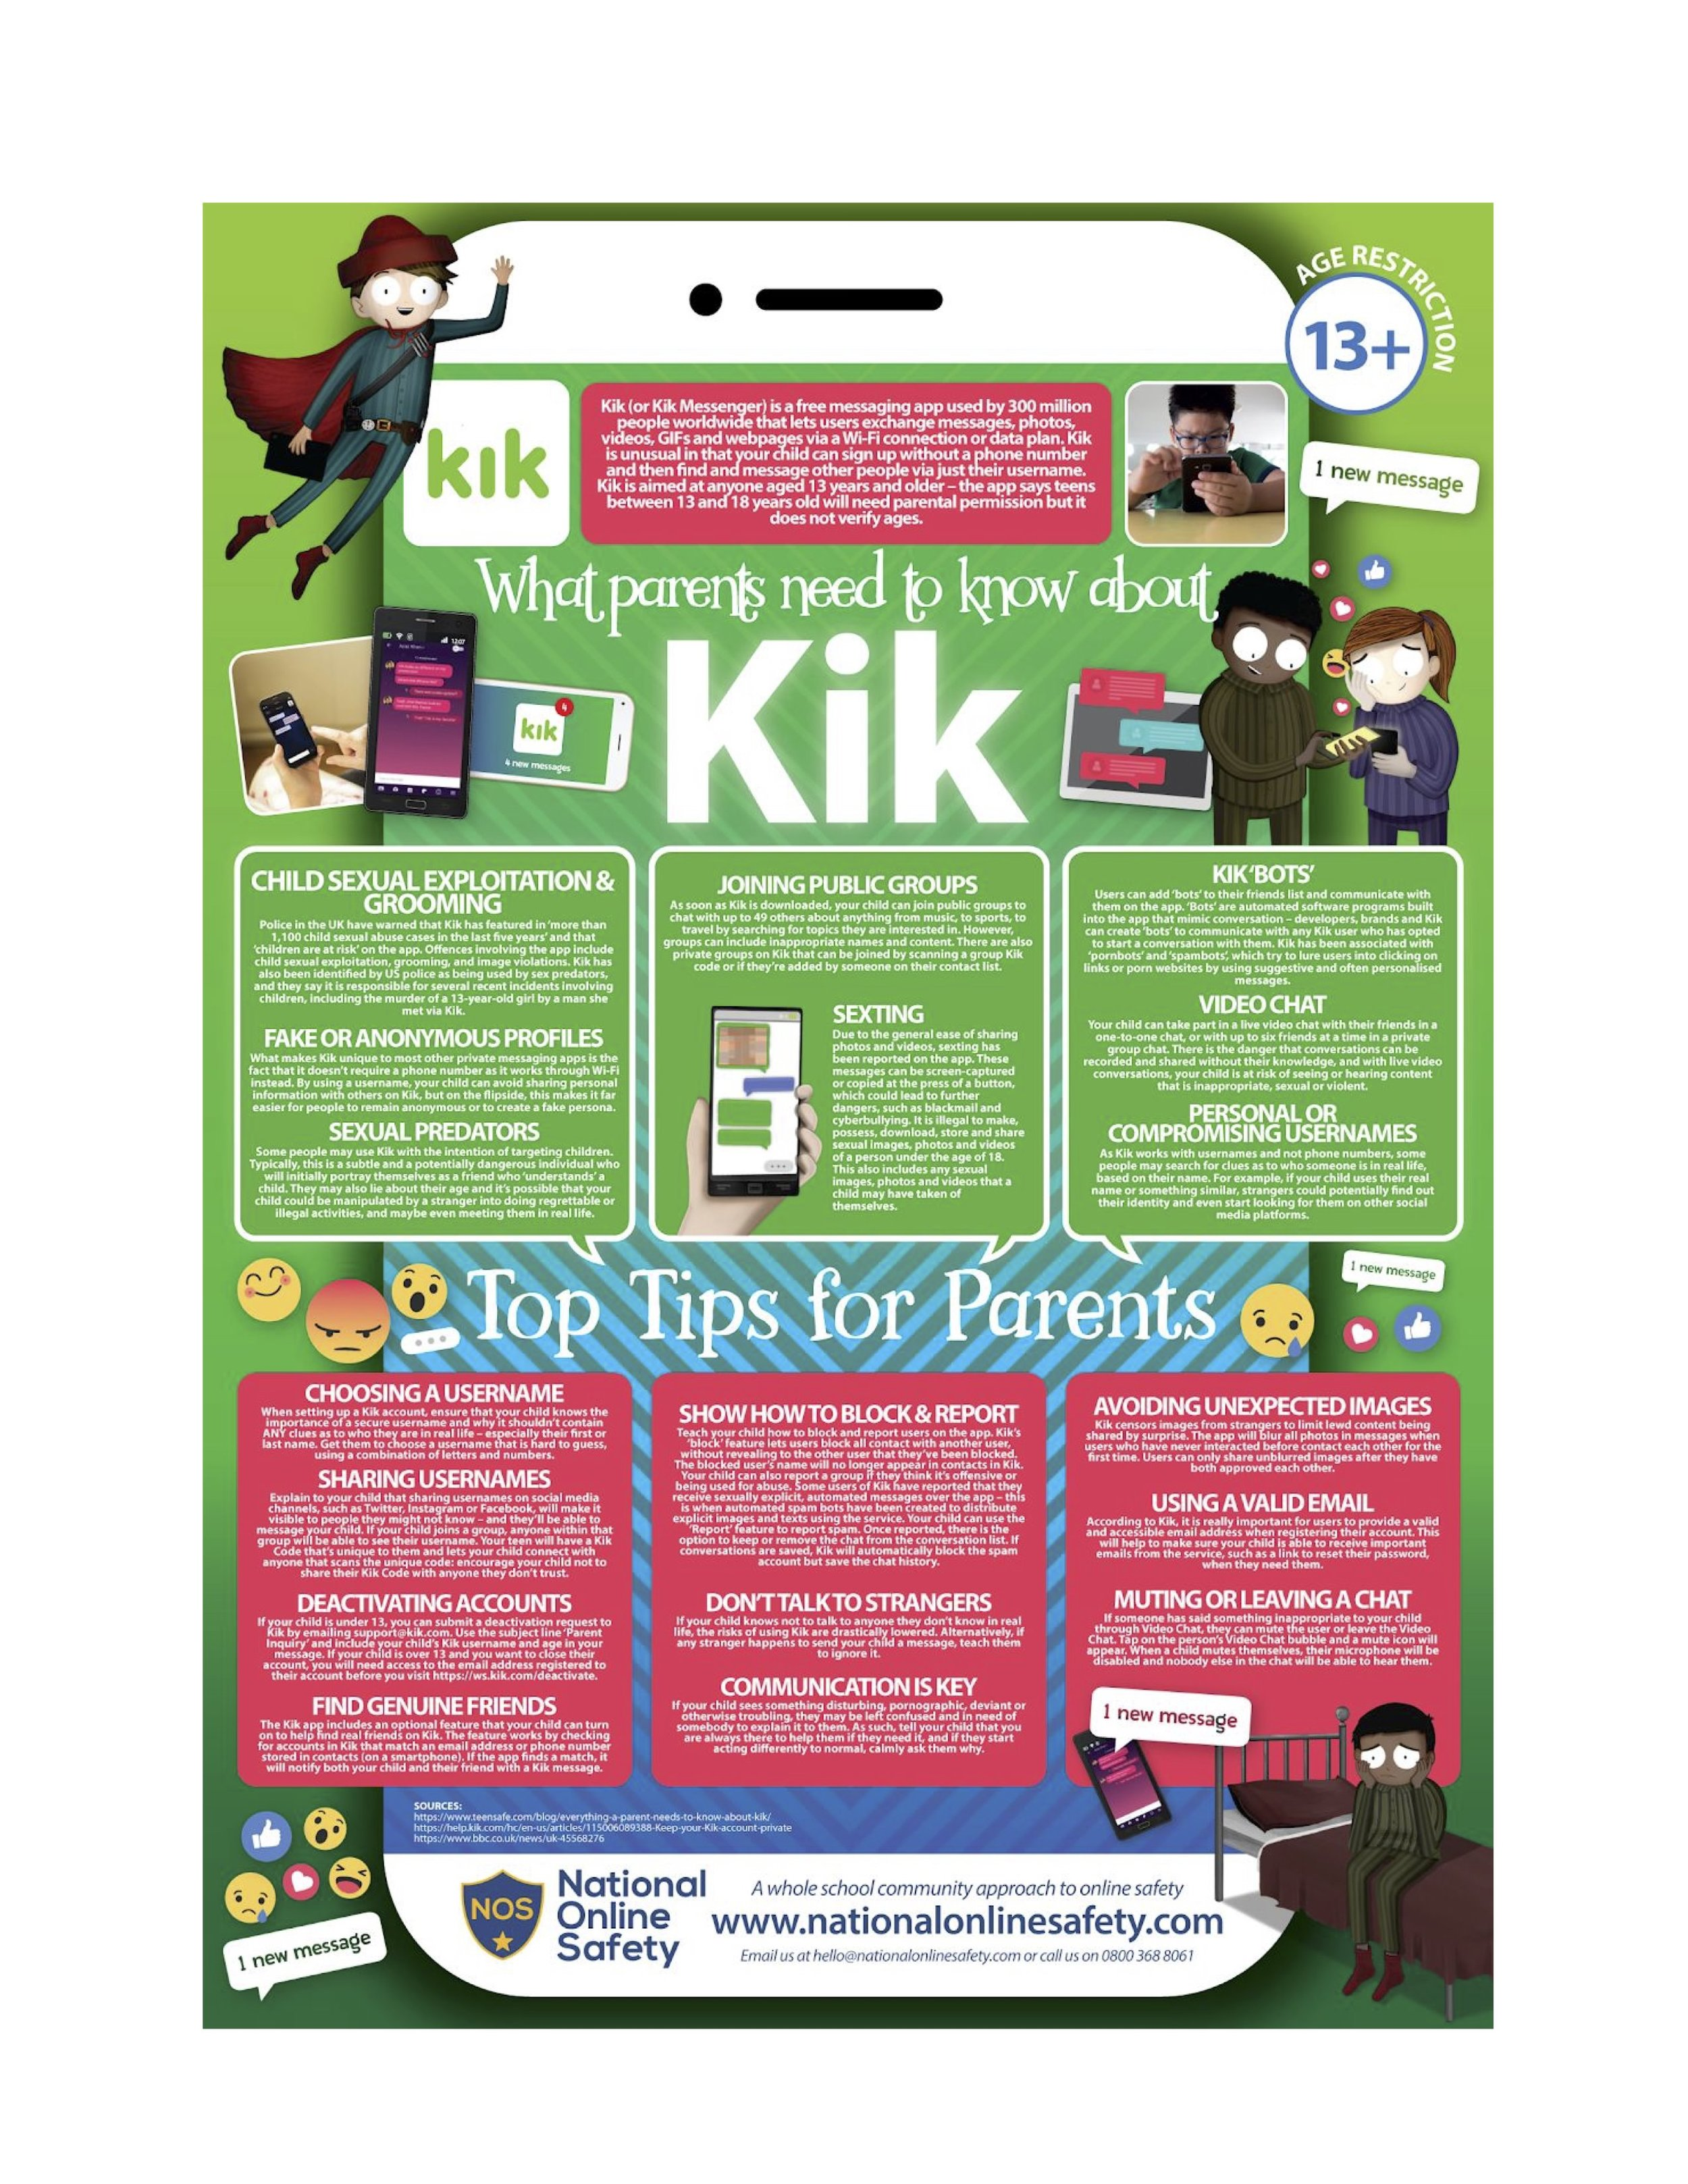 Advice for Parents About Children's Use of Kik